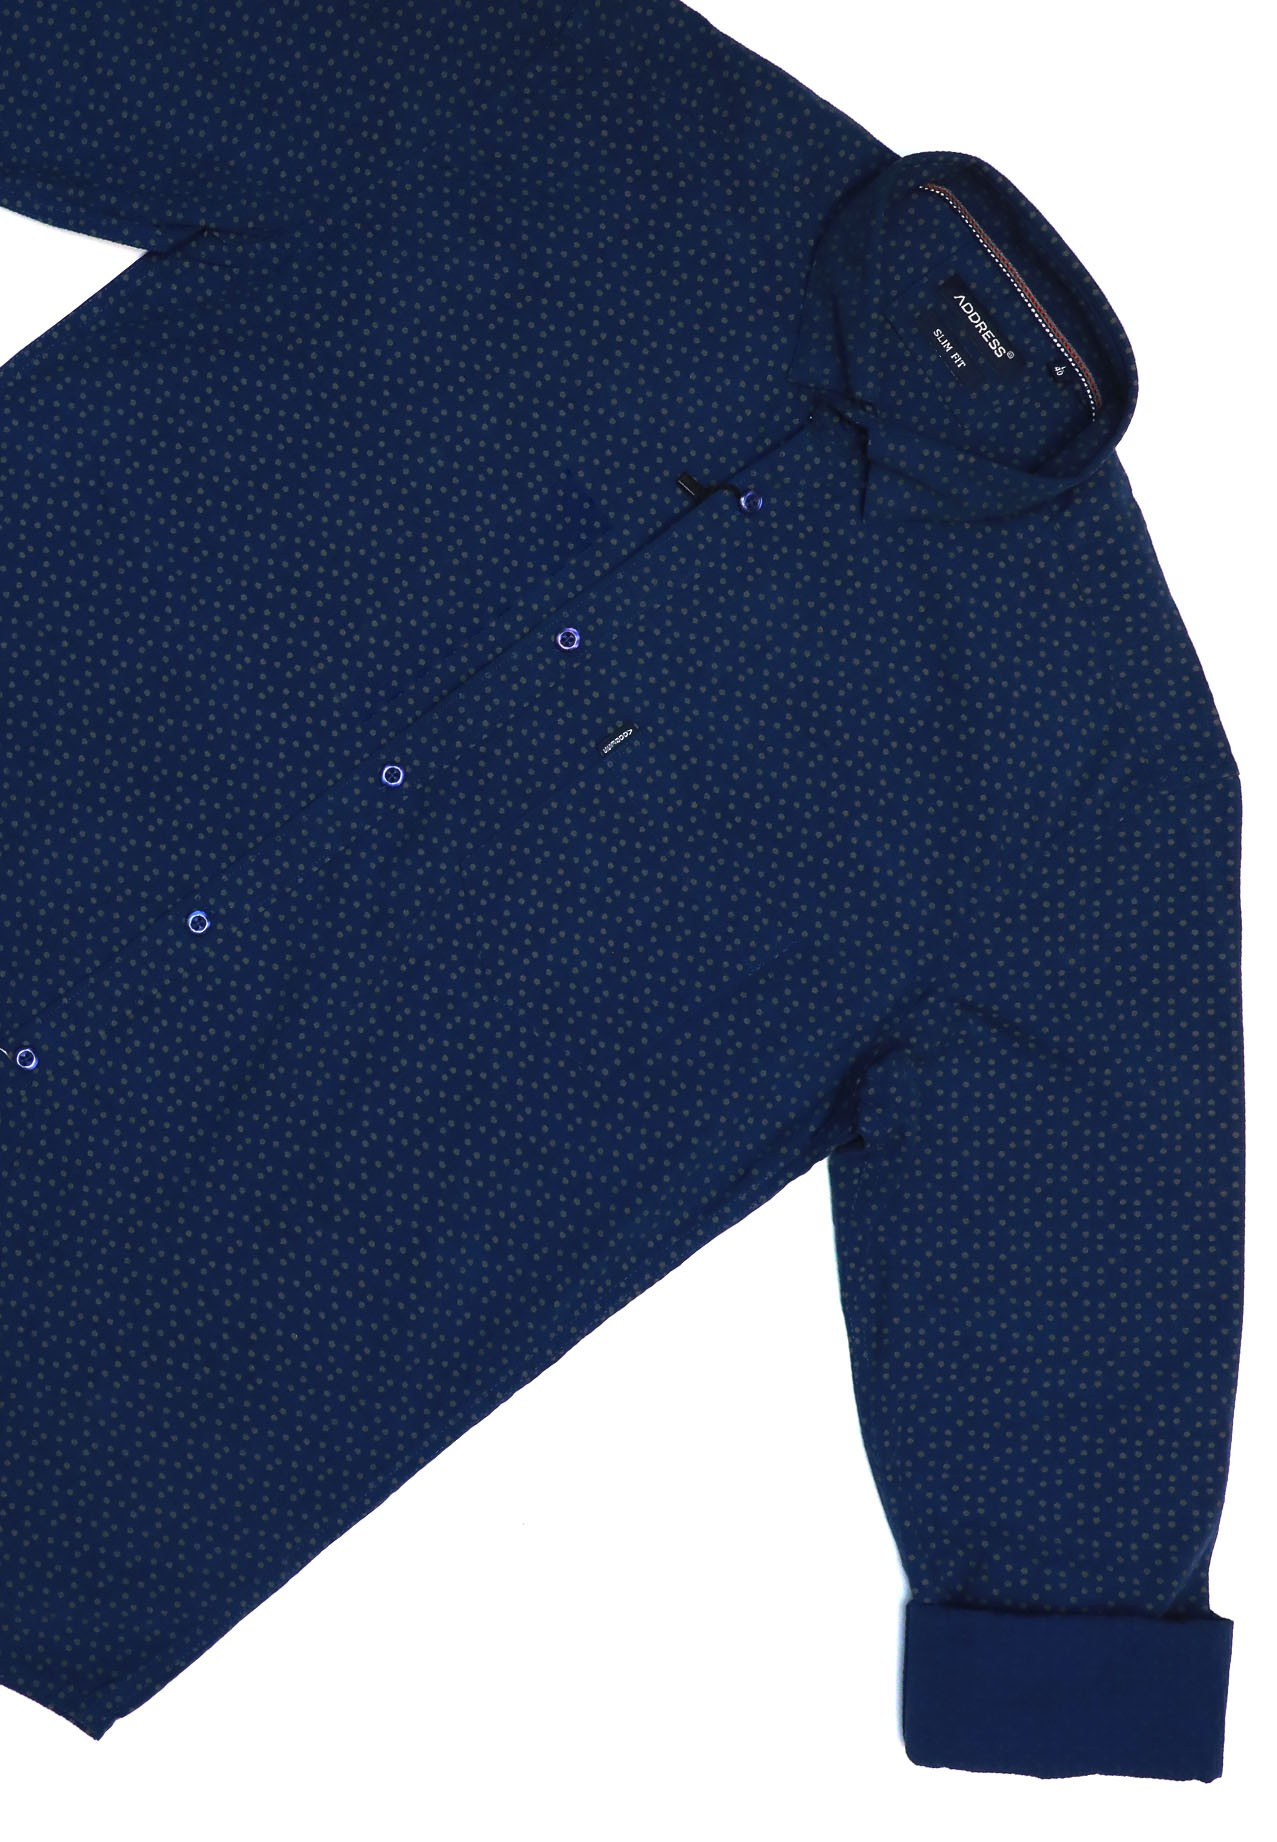 Address Casual Shirt Shirt Blue With Dots Slim Fit, Large